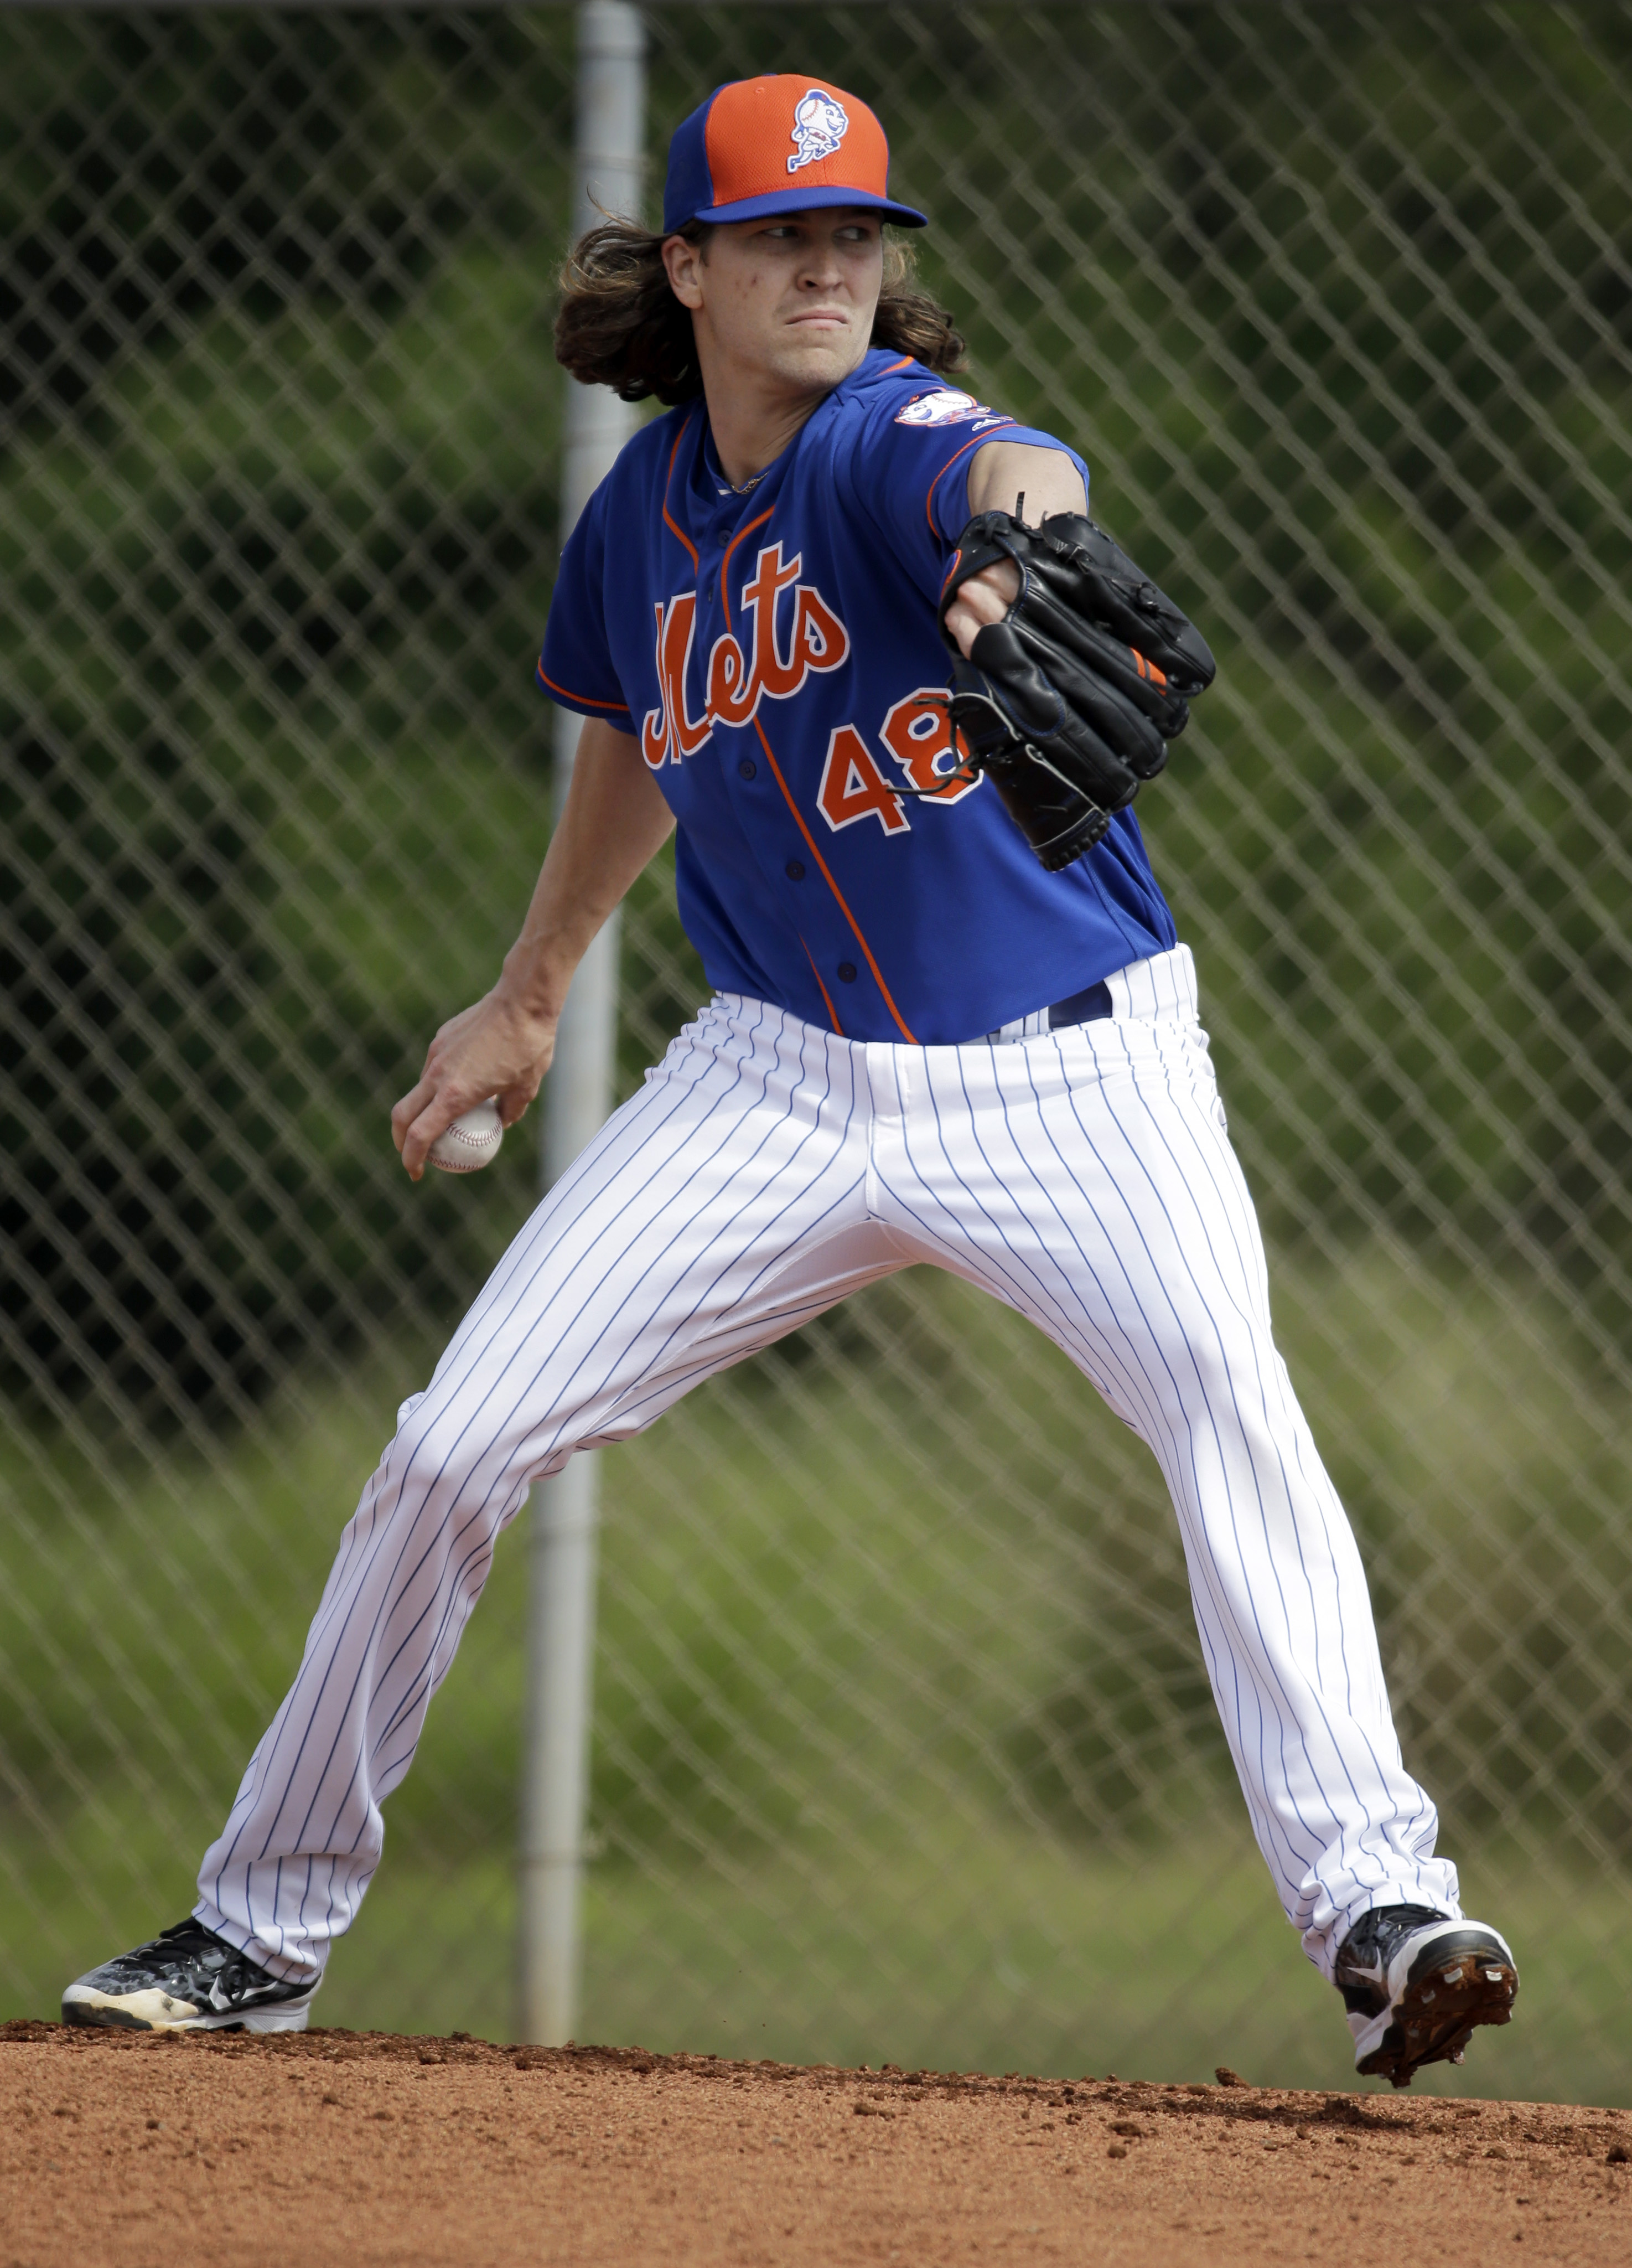 New York Mets pitcher Jacob deGrom throws a bullpen session during spring training baseball practice Saturday, Feb. 20, 2016, in Port St. Lucie, Fla. (AP Photo/Jeff Roberson)